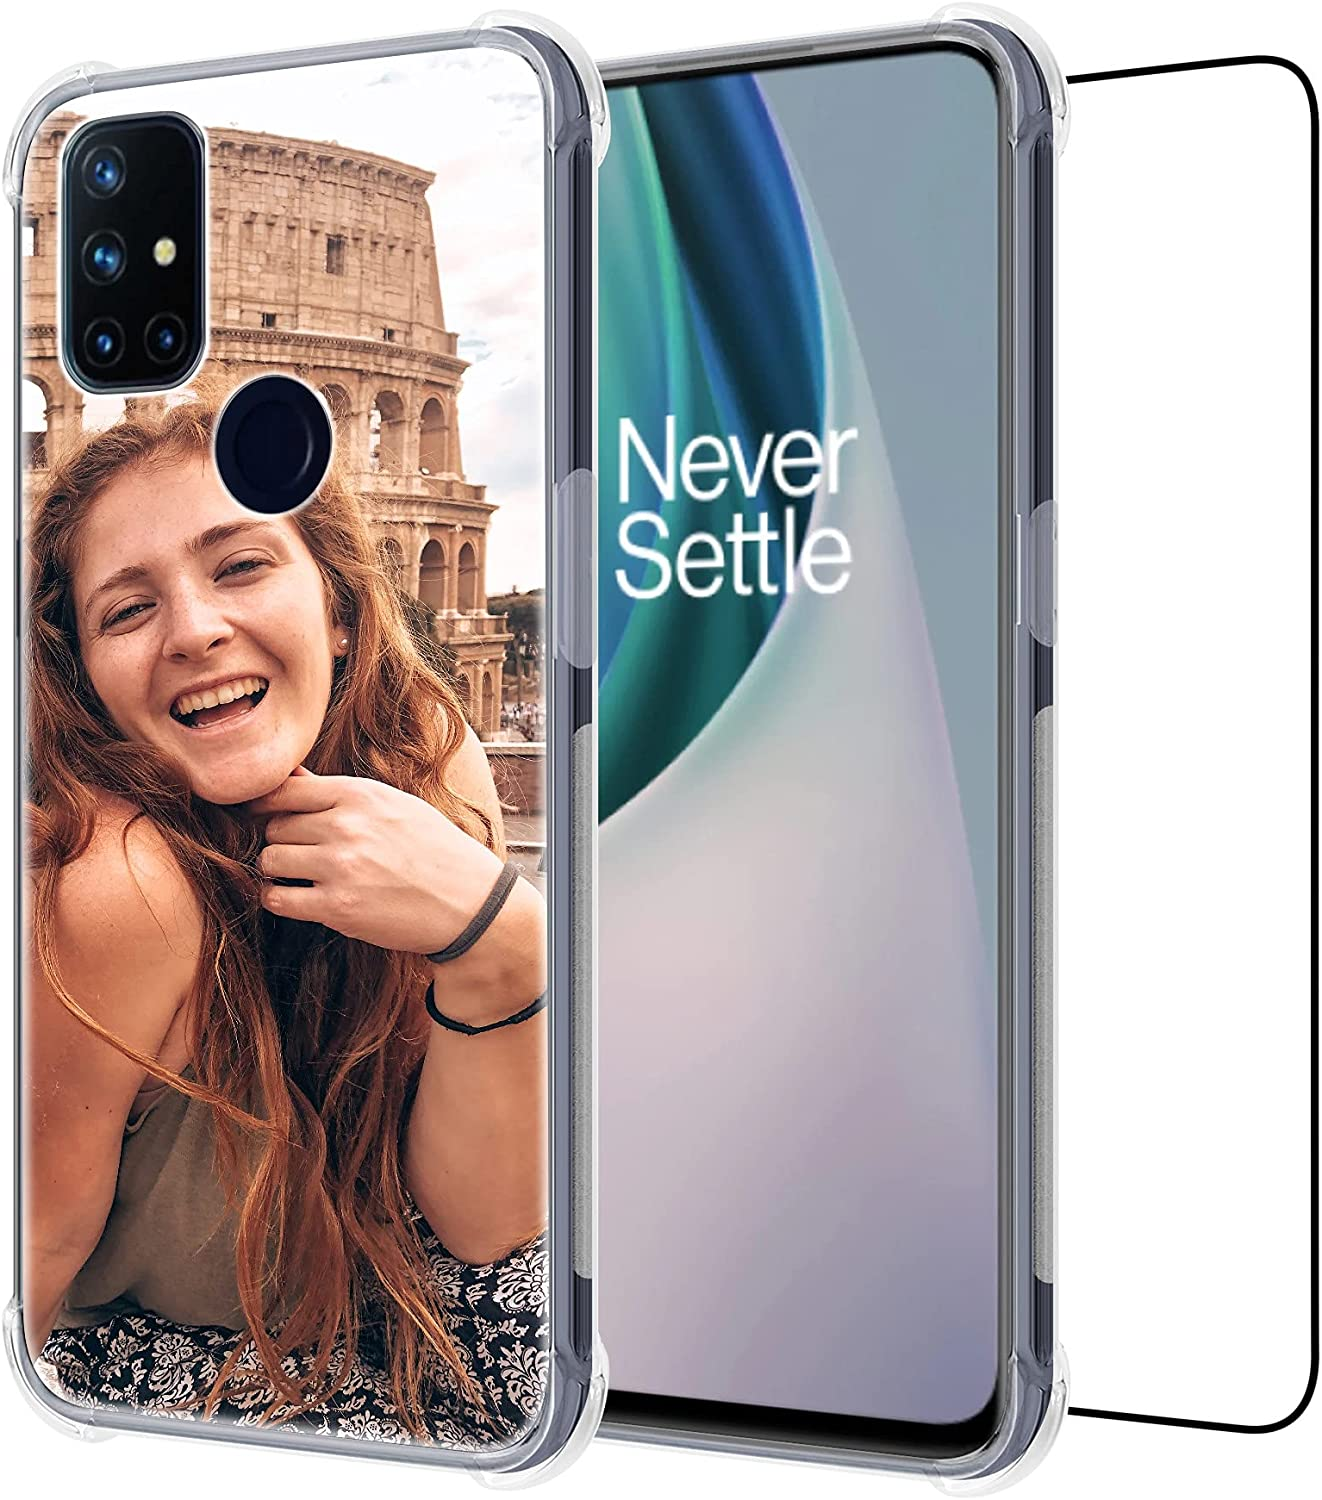 Customized Compatible with OnePlus Nord N10 5G,Clear Shockproof Bundle Phone Cover with 1Pack Screen Protector for Ladies,for Girls,for Women,for Mother,for Men(Shockproof)